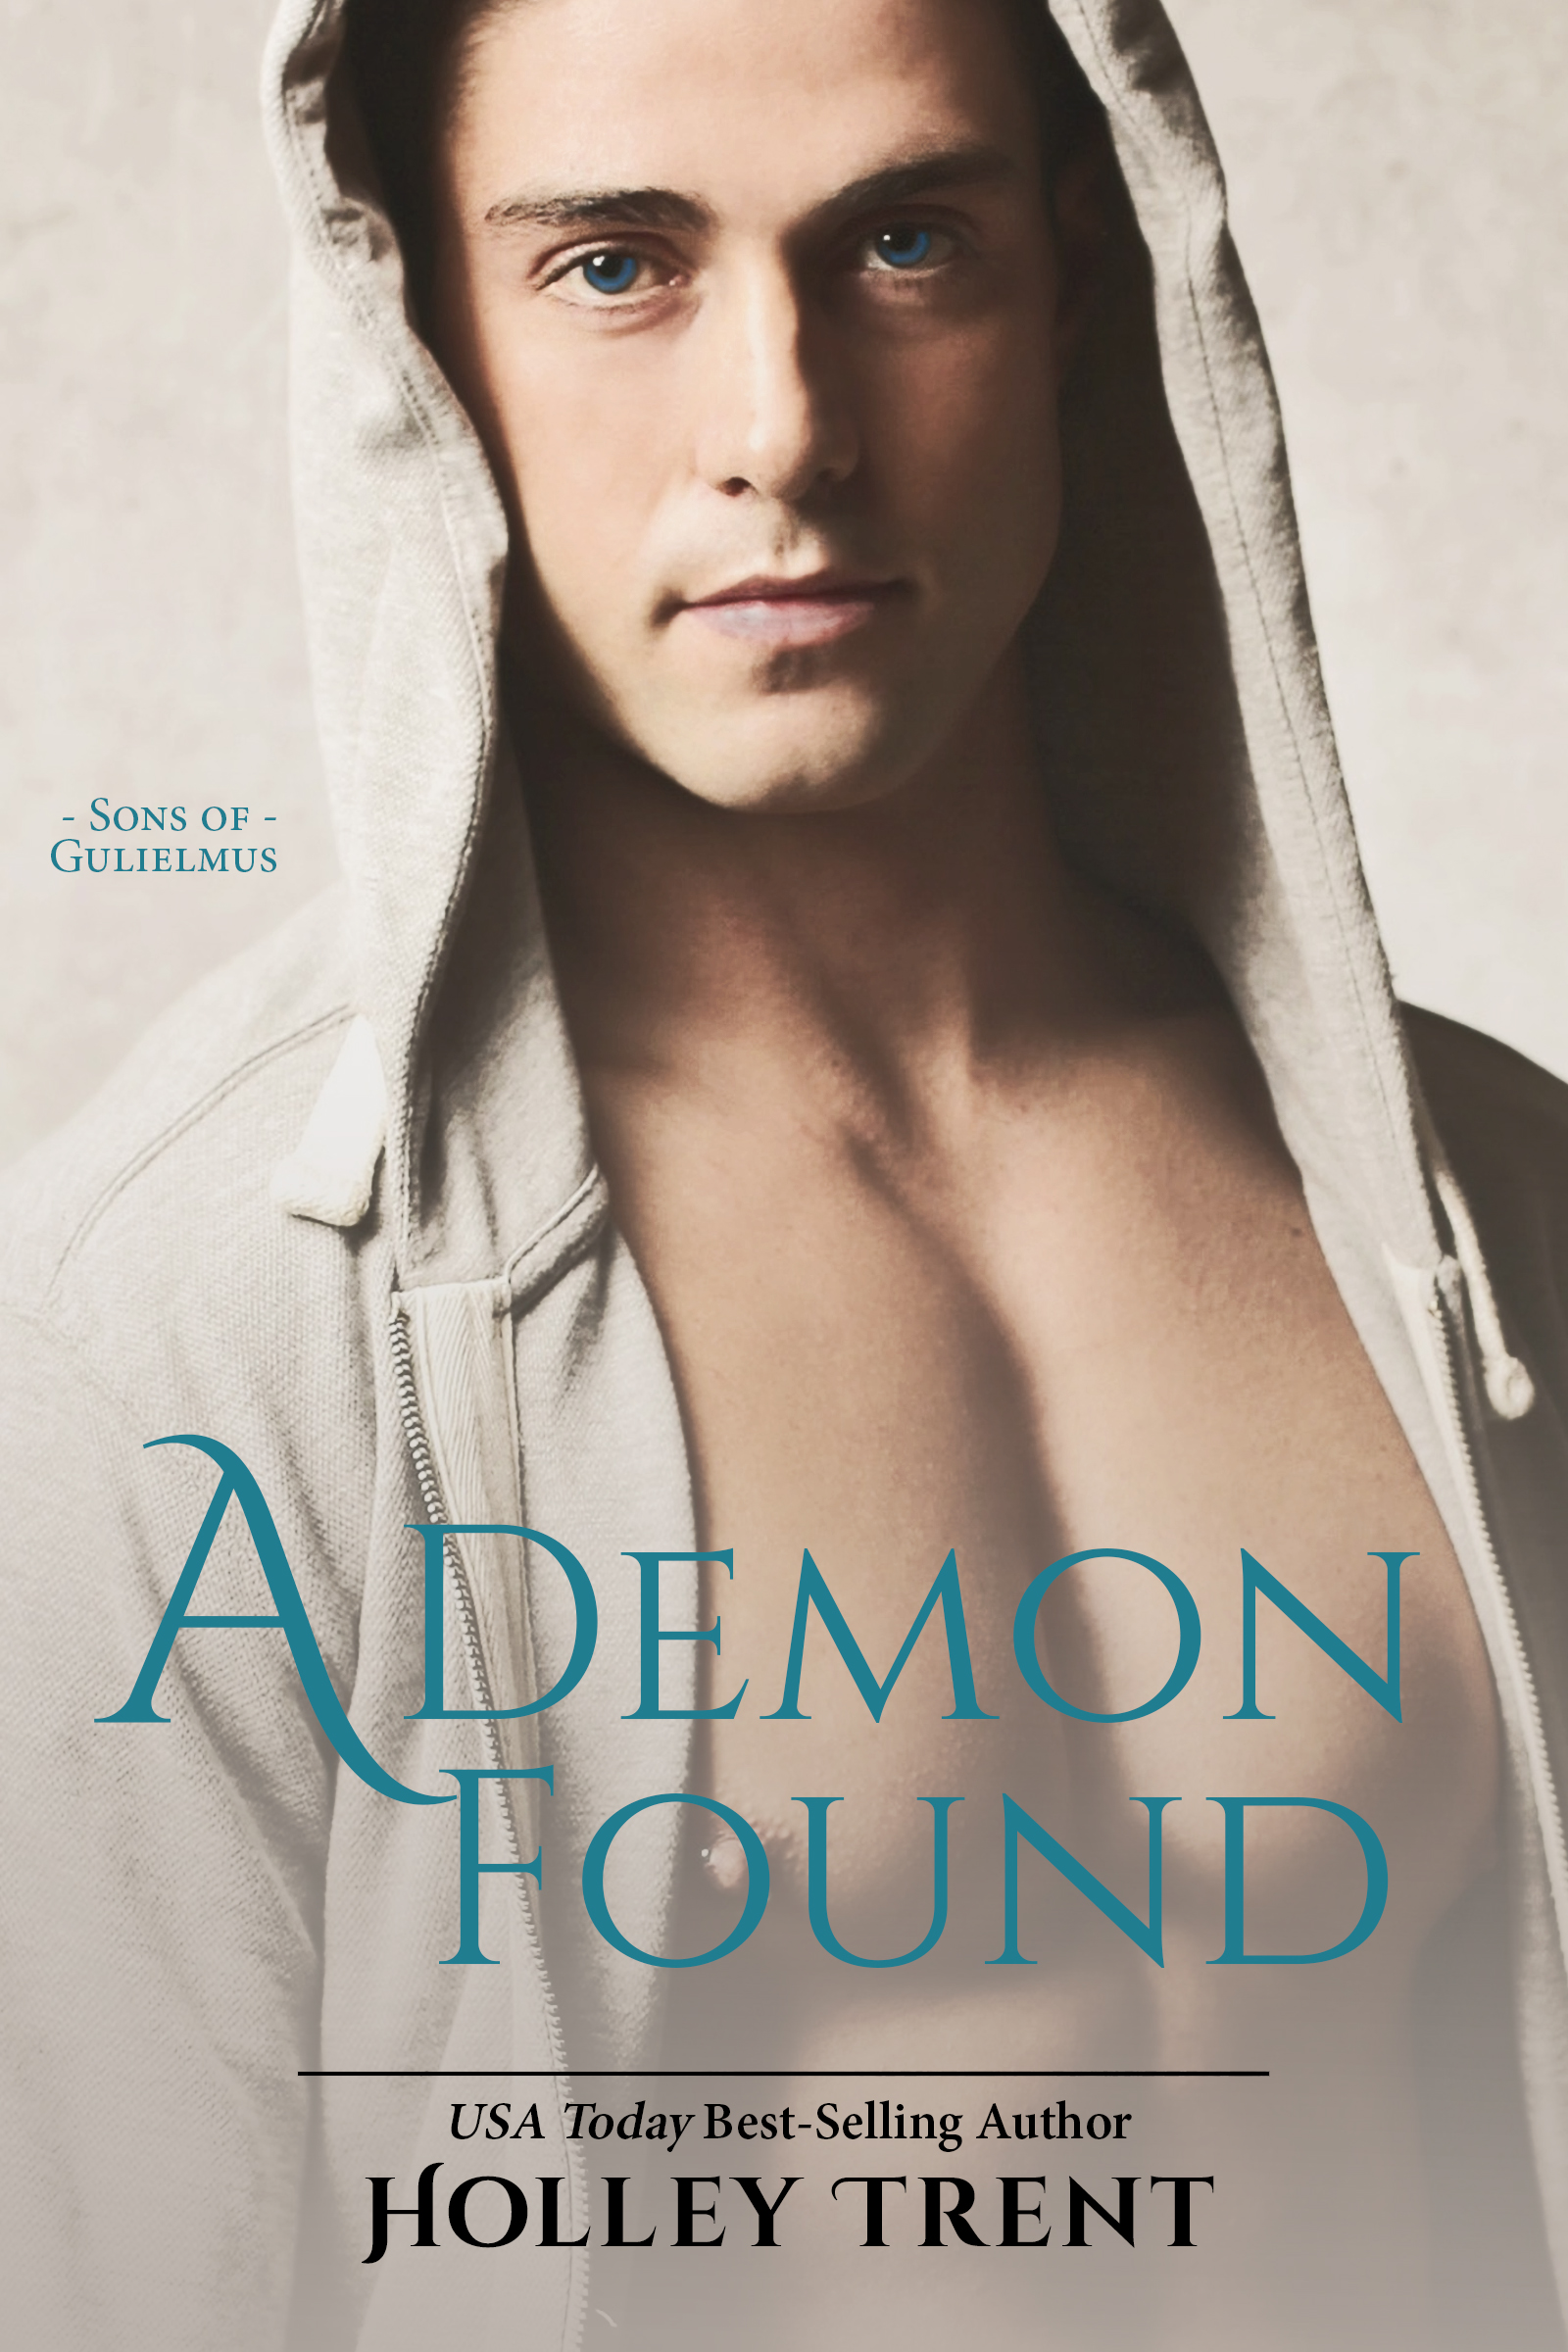 cover of A Demon Found by Holley Trent has a man in a beige hoodie sweatshirt open at the chest. He stares toward the camera with bright blue eyes.